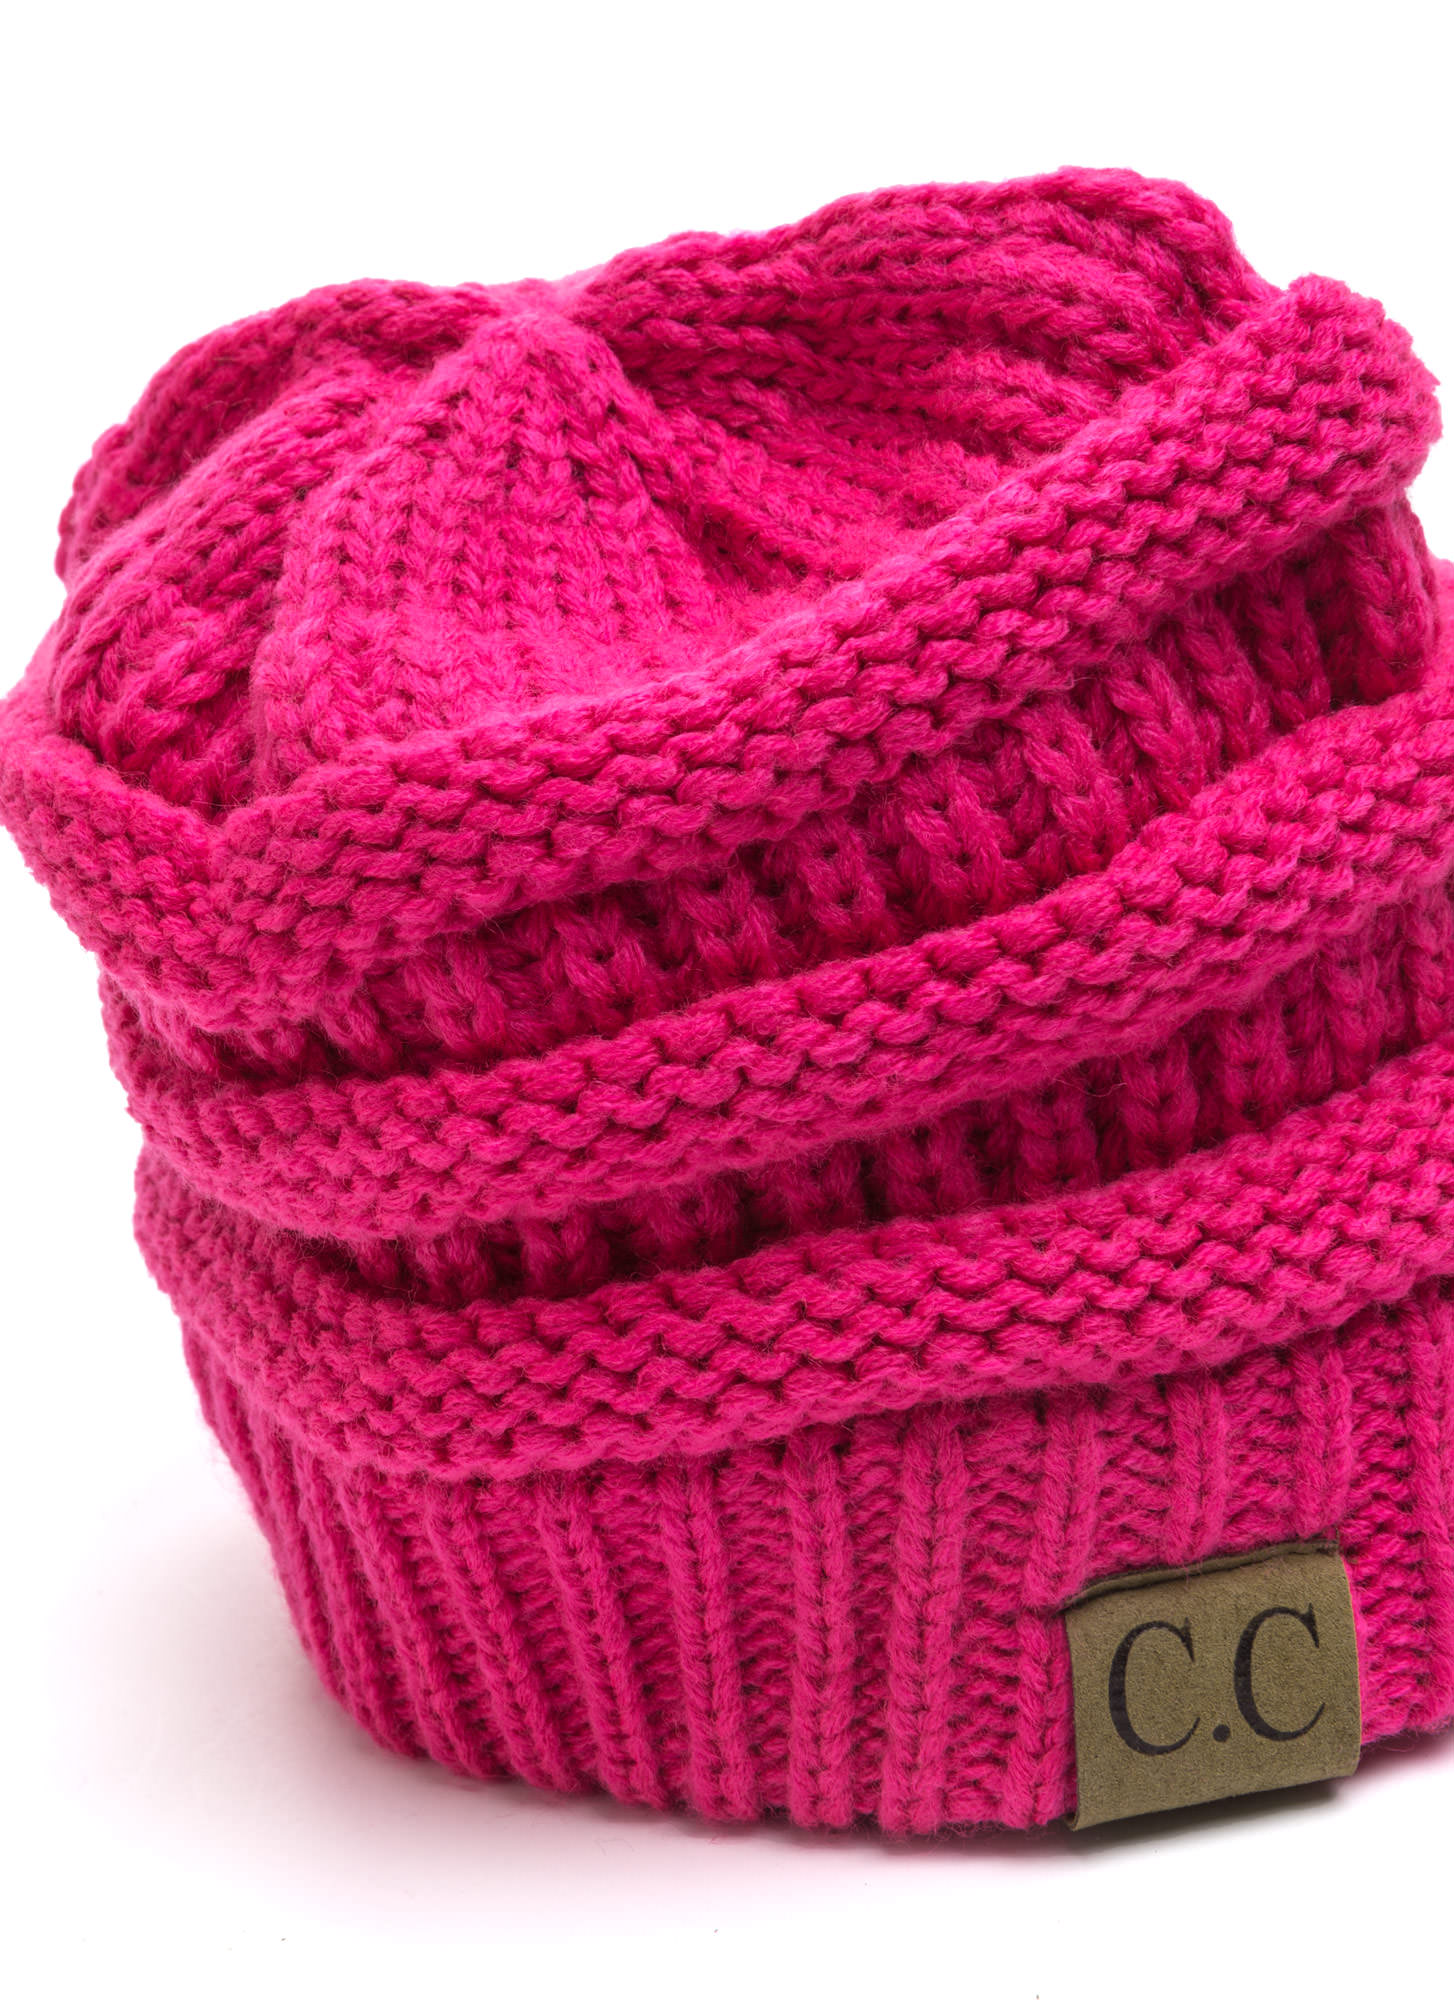 Cozy CC Cable Knit Beanie FUCHSIA (Final Sale)